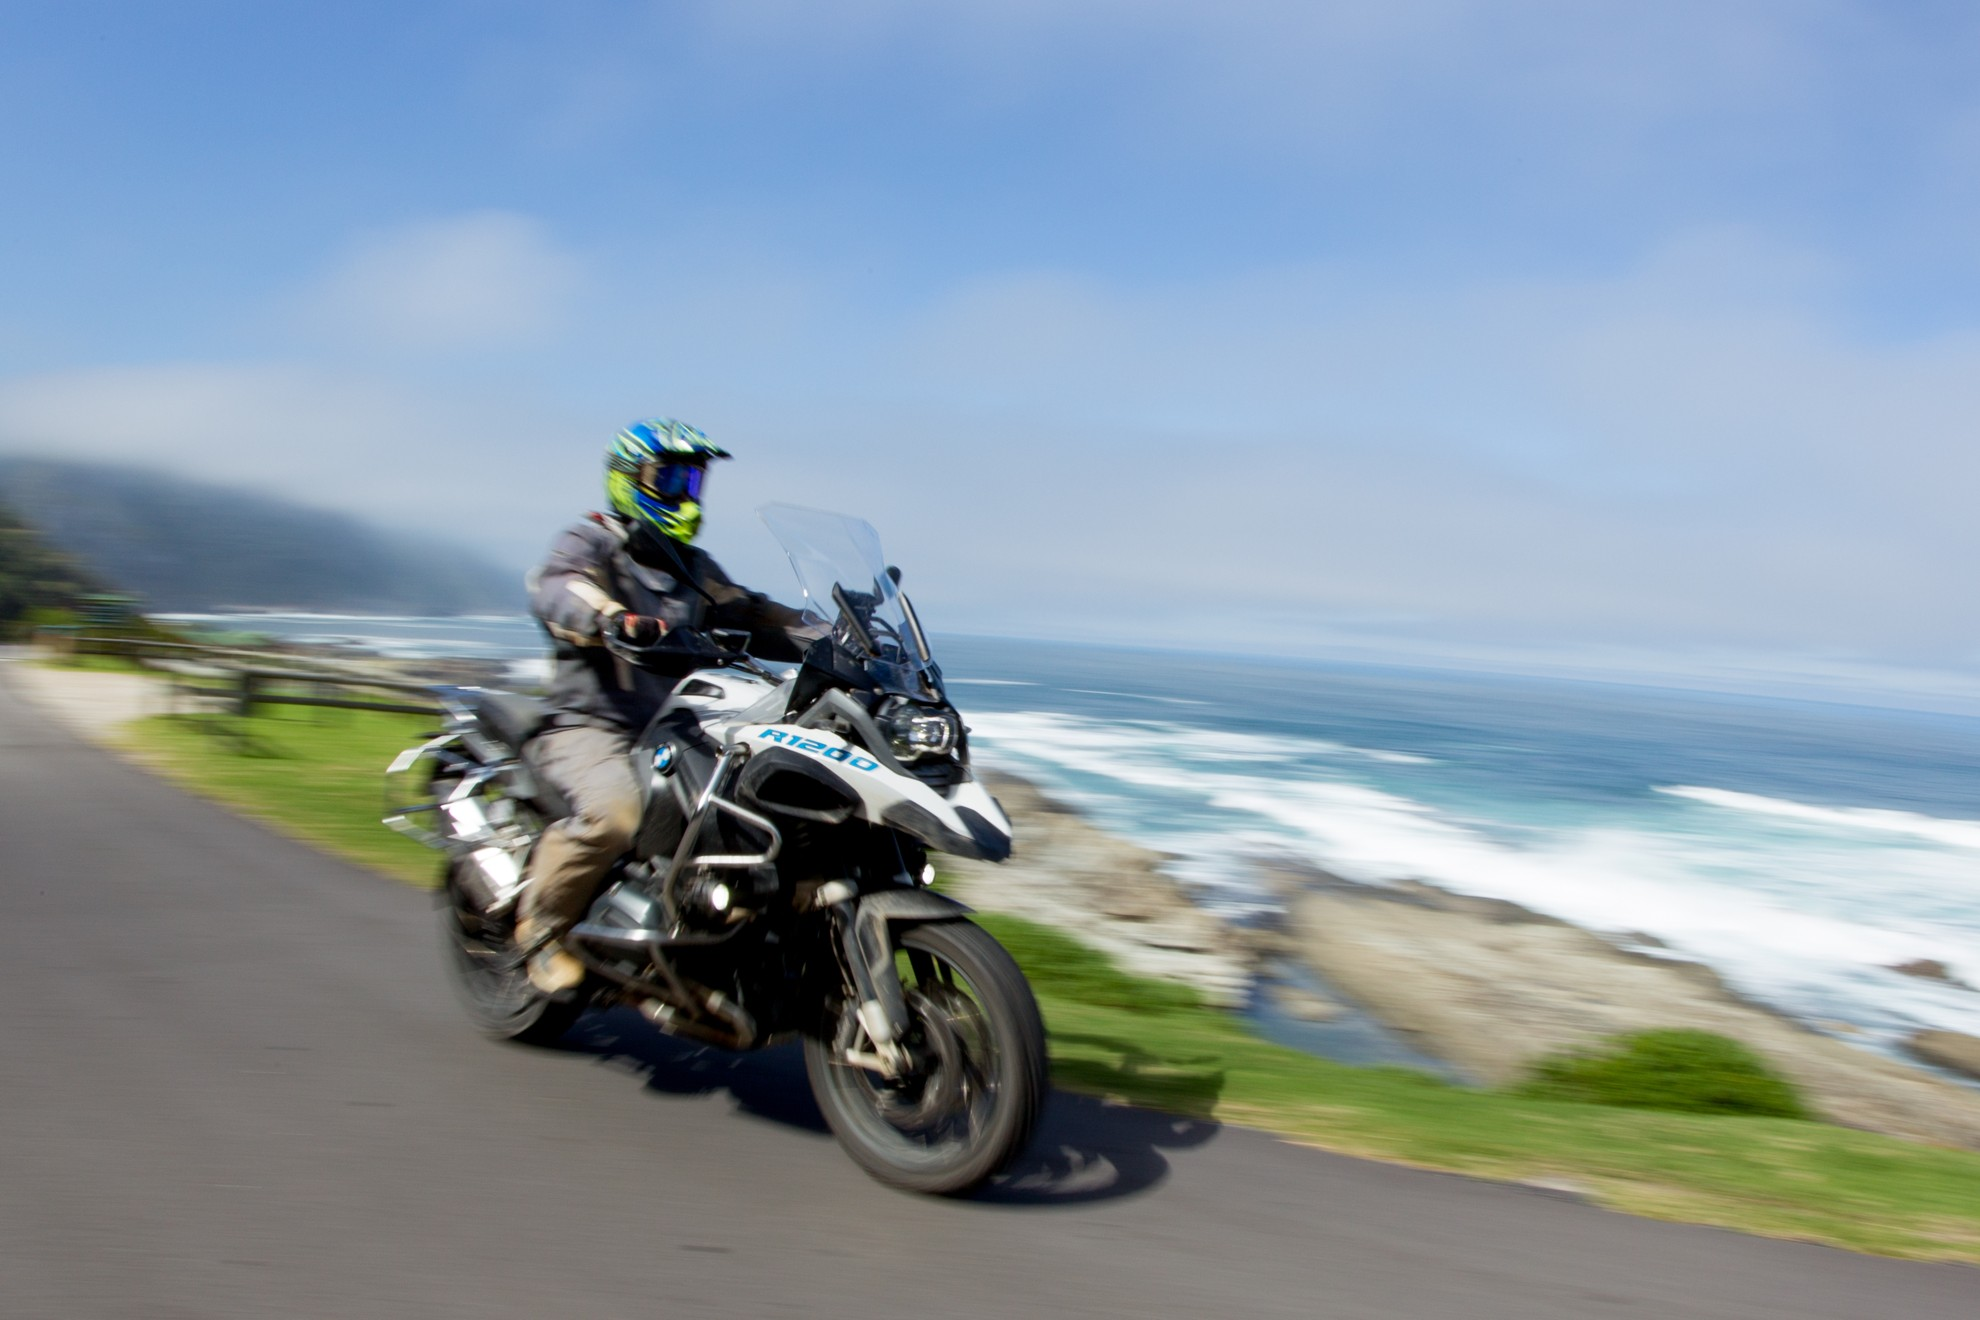 bmw r 1200 gs motorcycle adventure now on sale in south africa